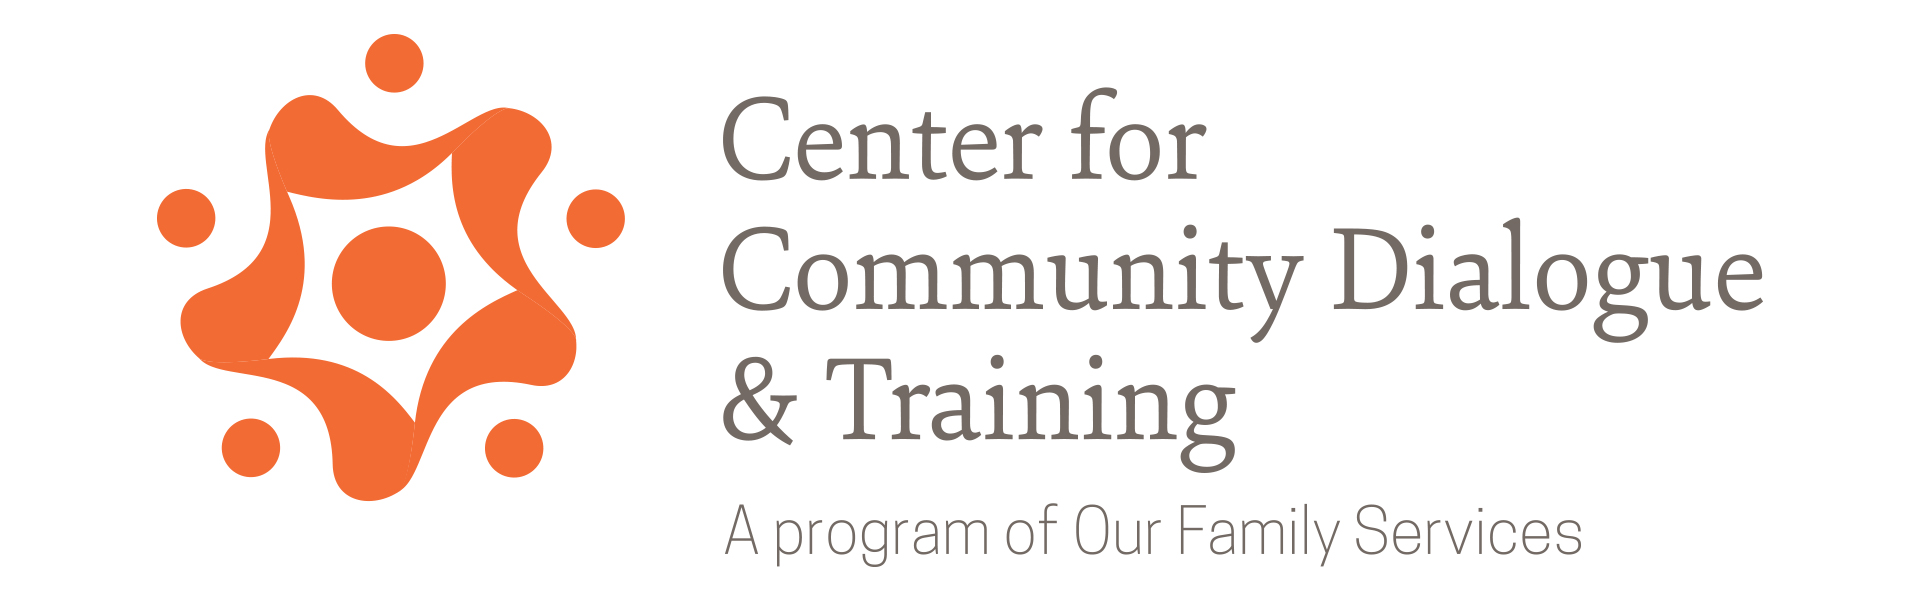 Center for Community Dialogue and Training